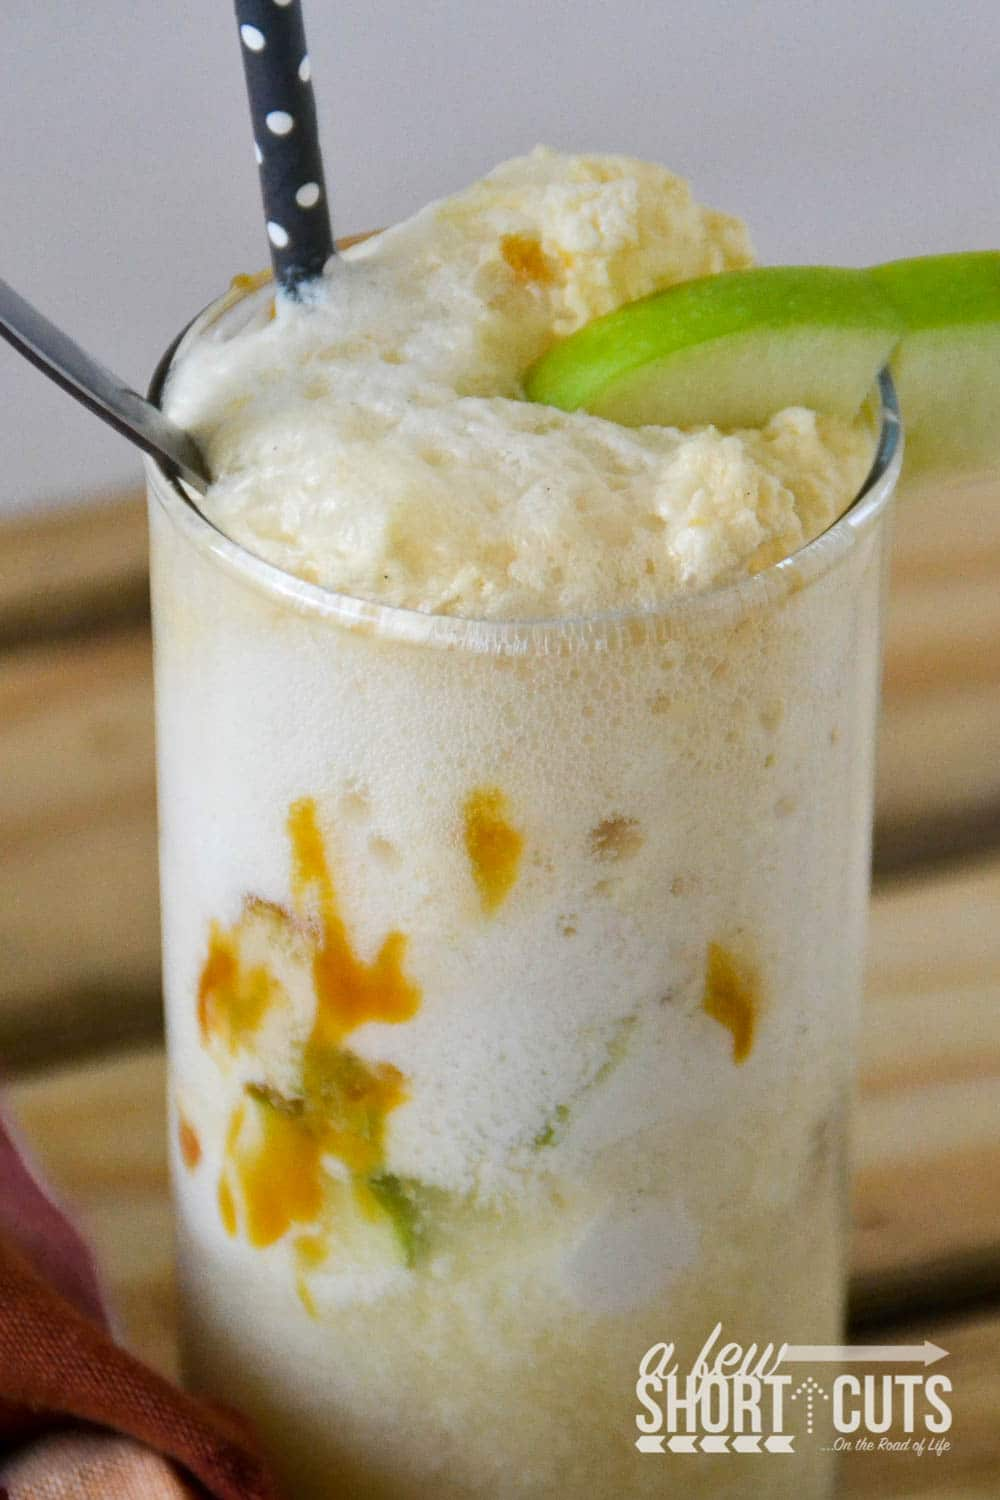 Float Recipe is so simple! It tastes like Apple Pie A-La-Mode in a cup! Sinfully delicious!